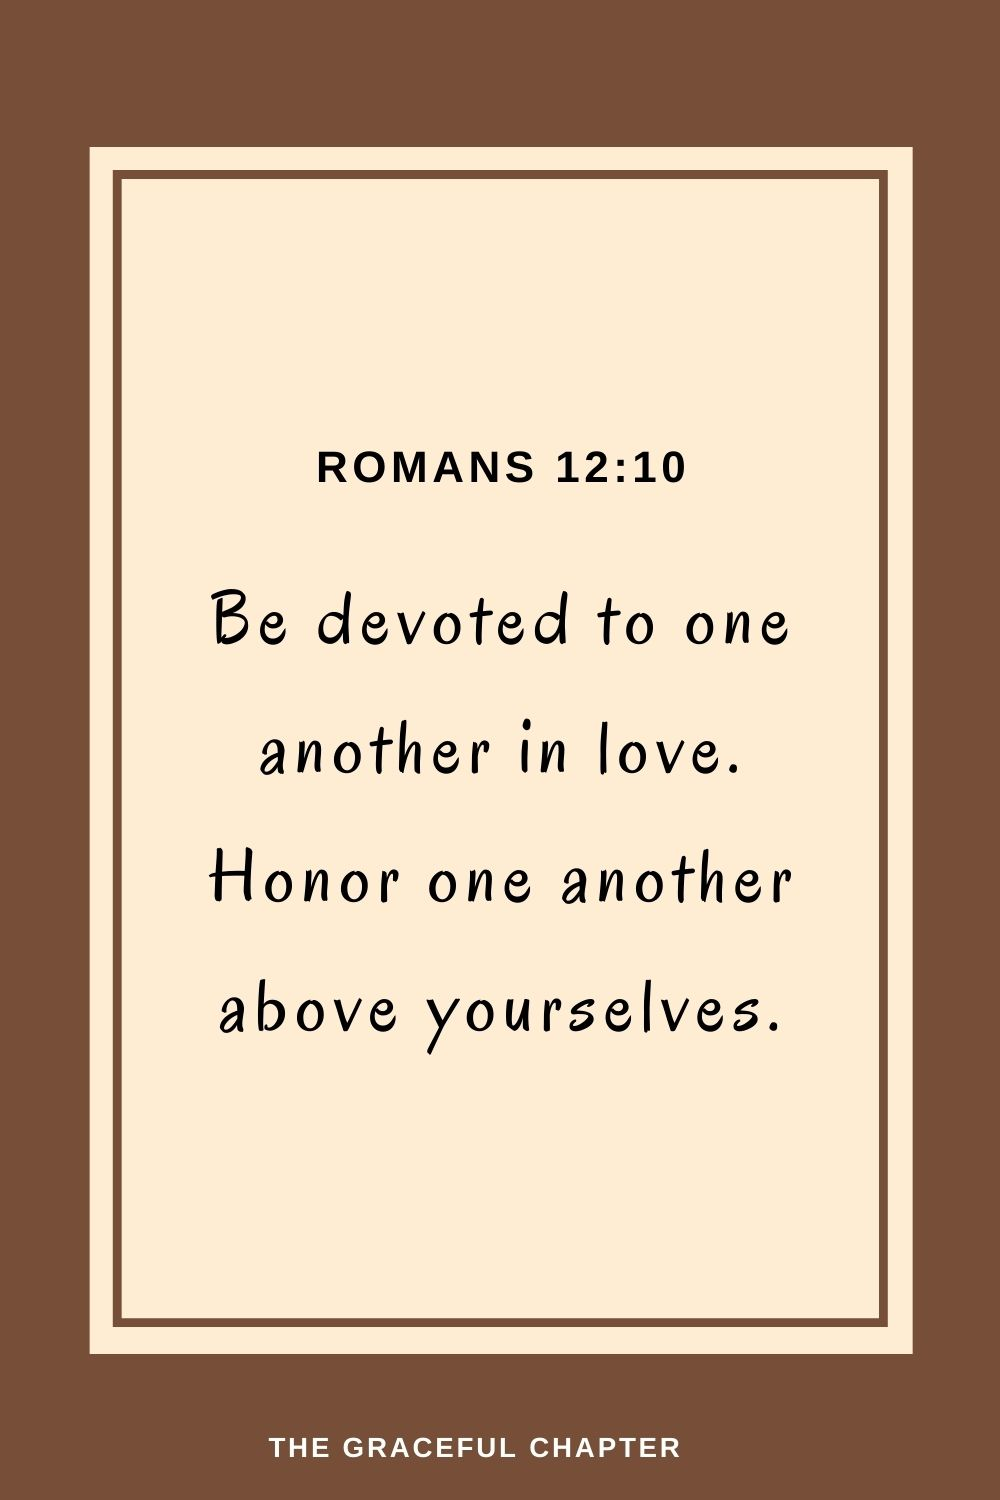 Be devoted to one another in love.Honor one another above yourselves. Romans 12:10